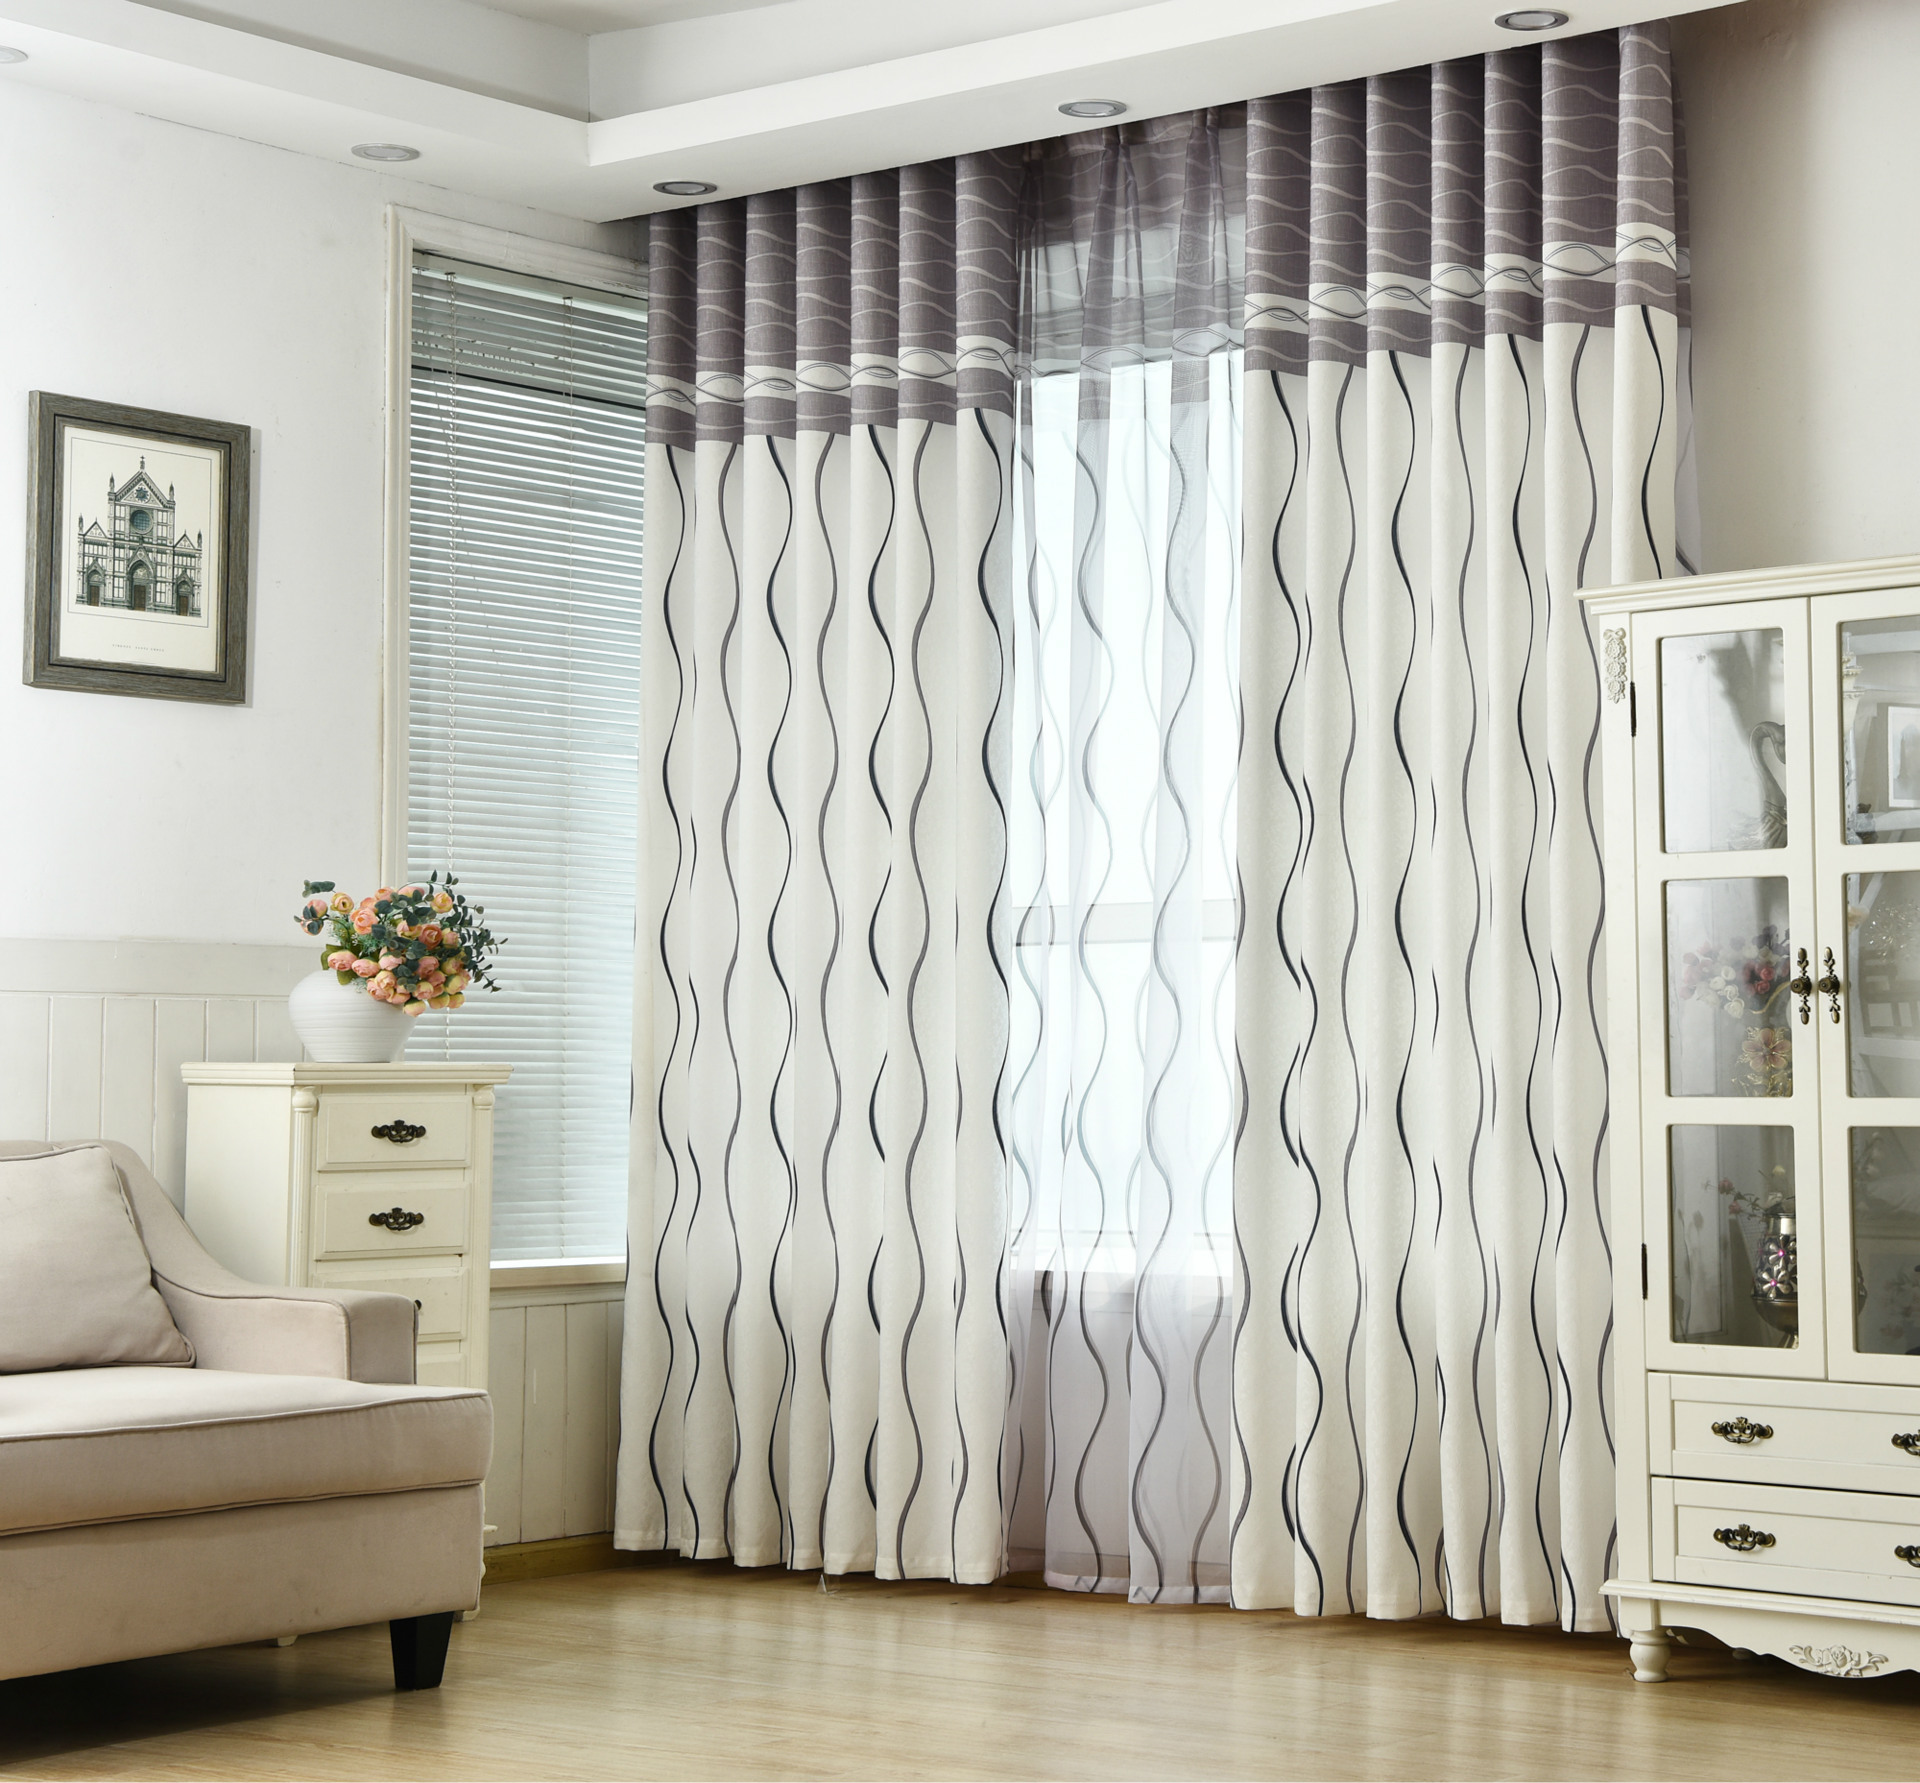 Classic Black And White Stripe Flat Environmental Protection Printing Curtain Curtains For